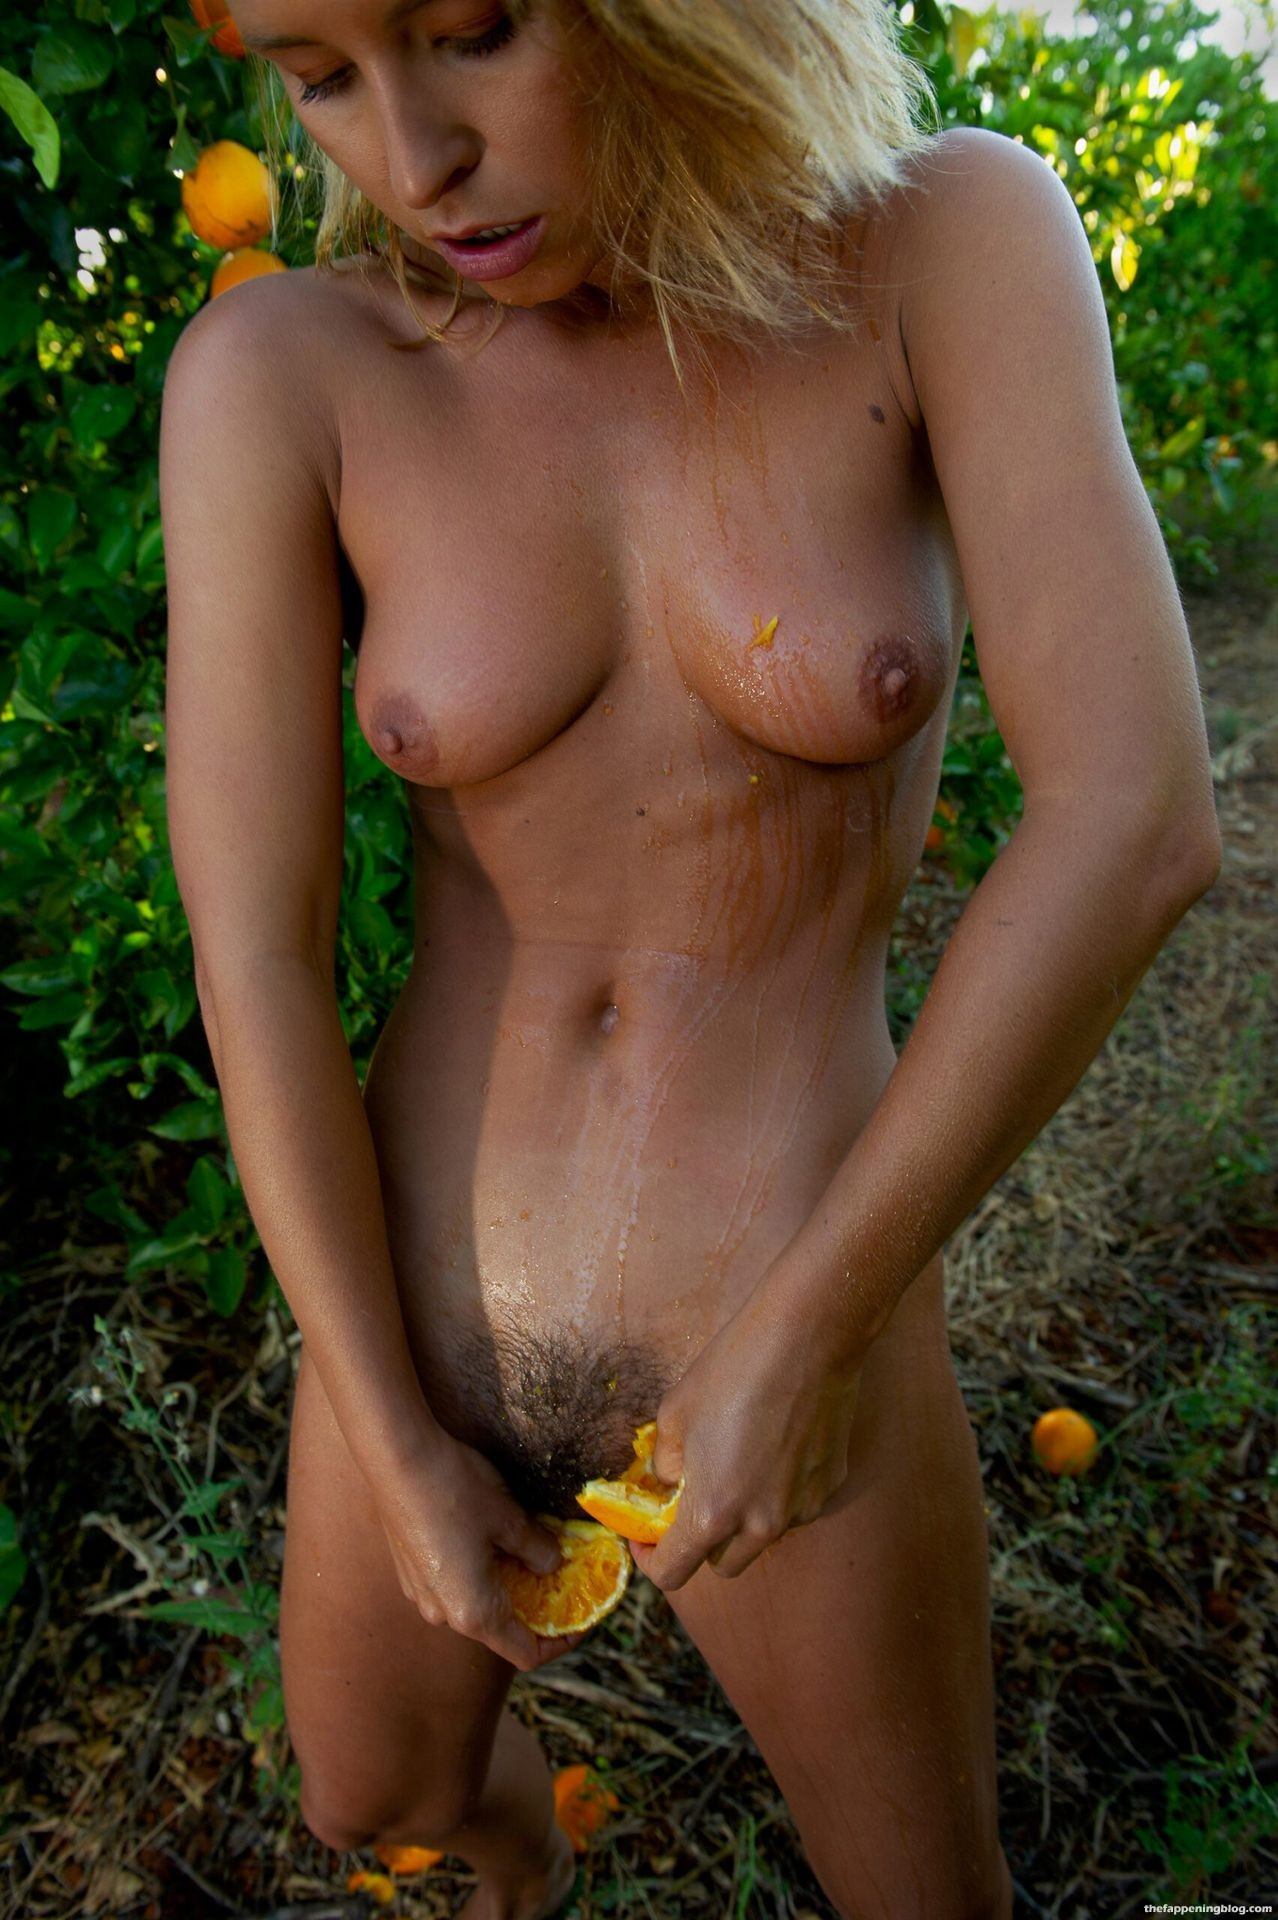 Marisa-Papen-Naked-10-1-scaled-thefappeningblog.com1_.jpg